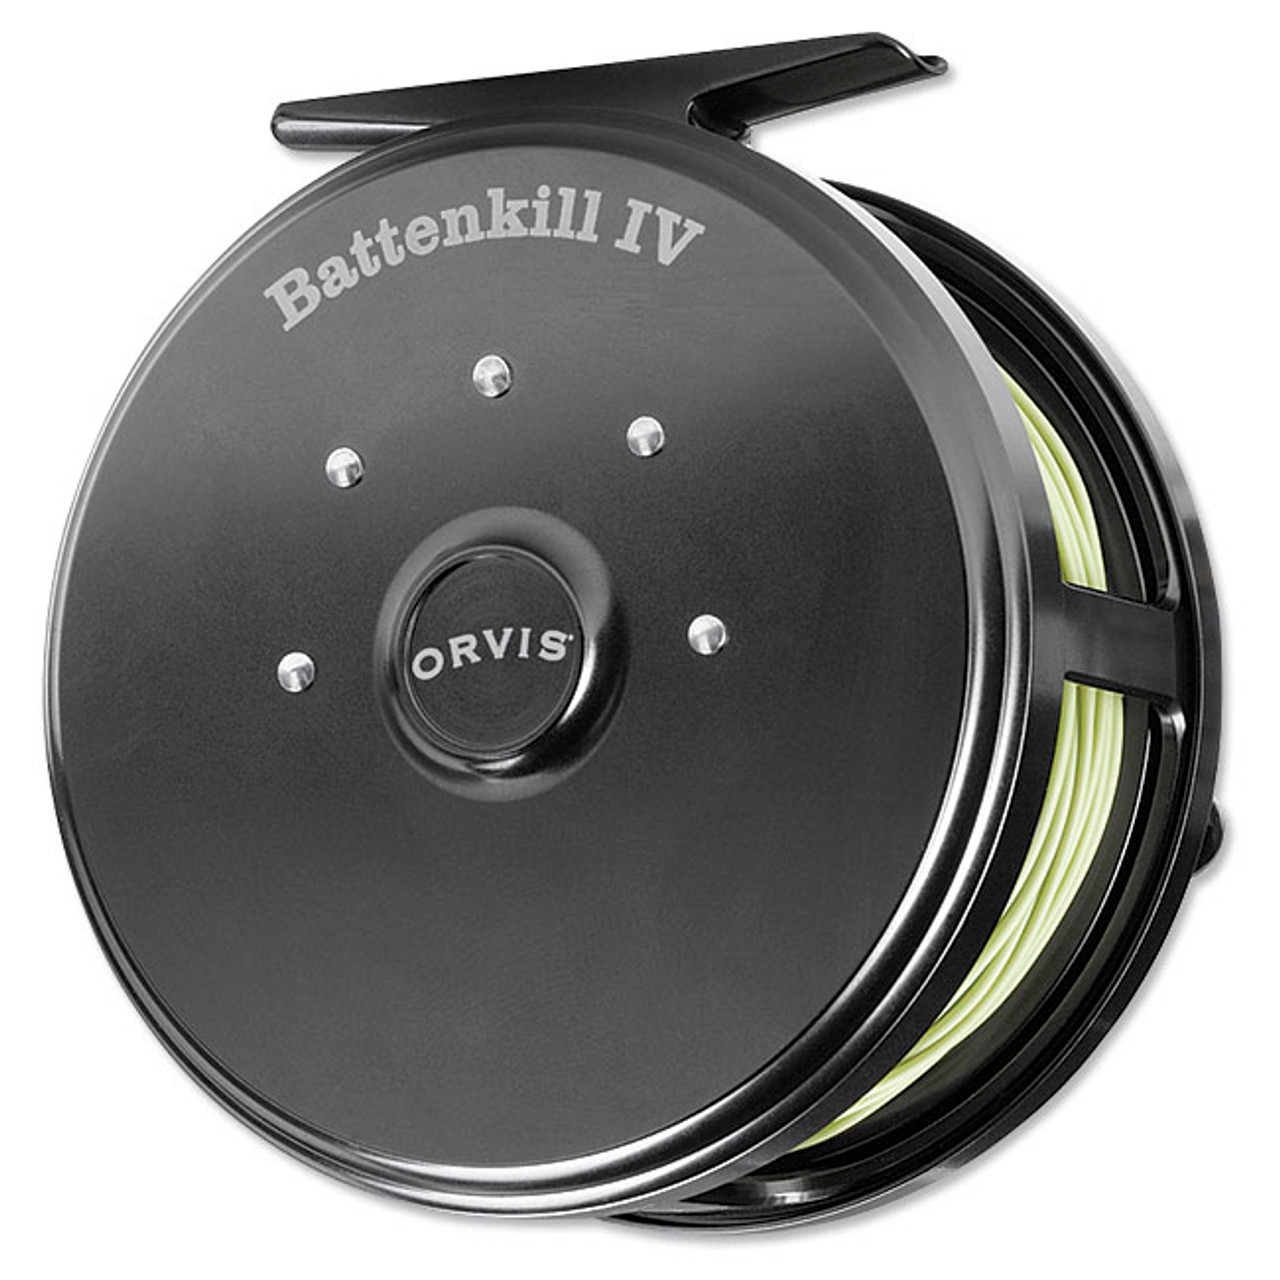 Orvis Battenkill Click and Pawl Fly Fishing Reel (Size IV - Size V)